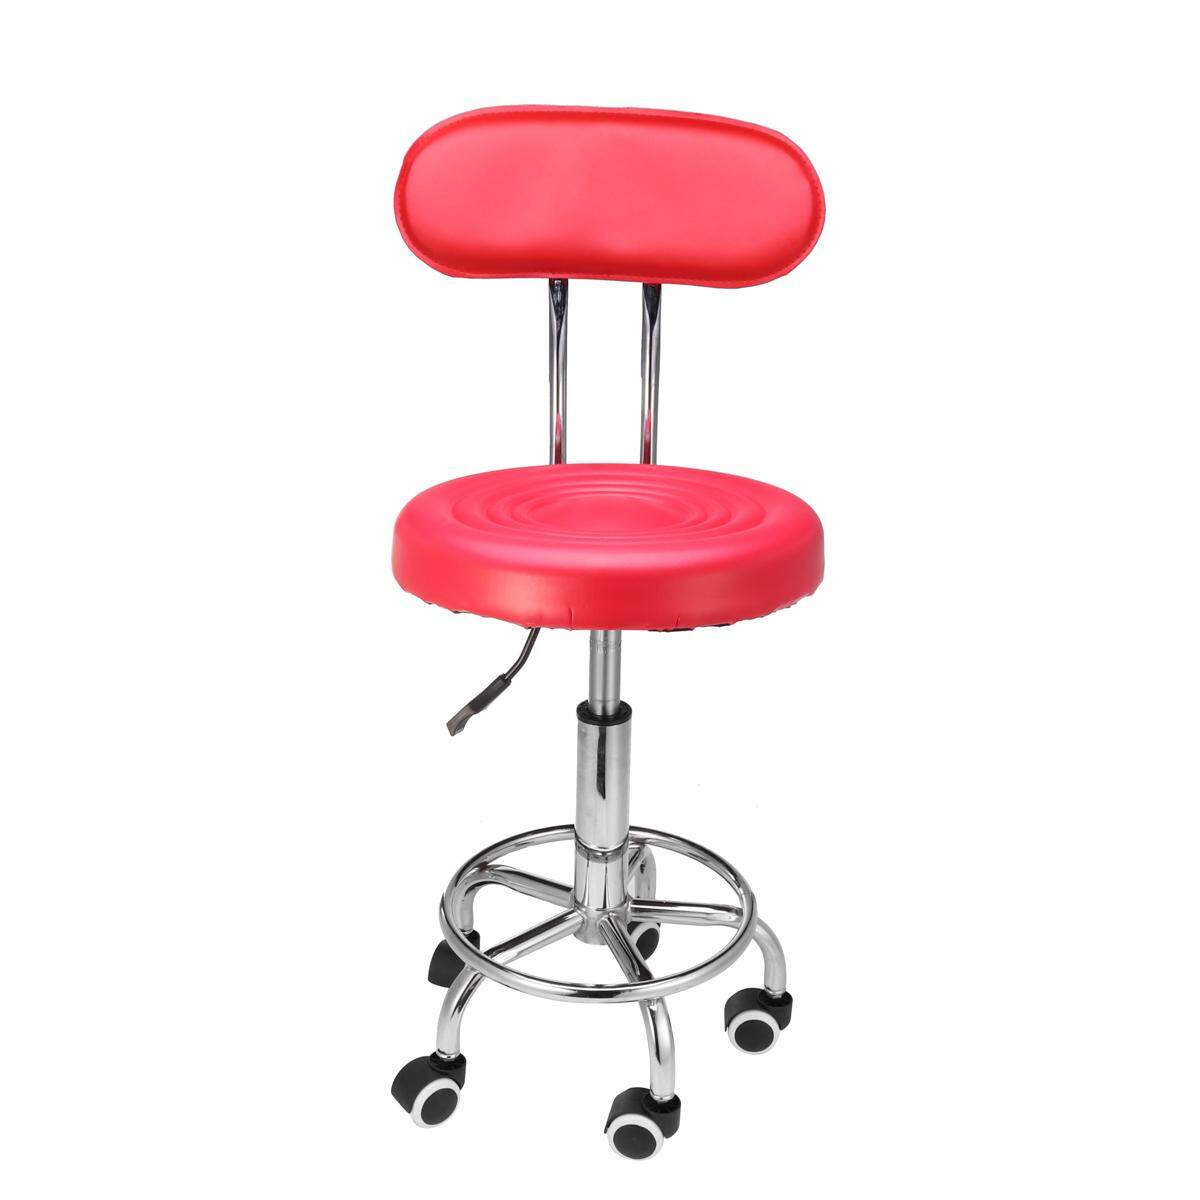 Salon Stool Chair Swivel Backrest Hairdressing Barber Beauty Hydraulic Lift AU Red